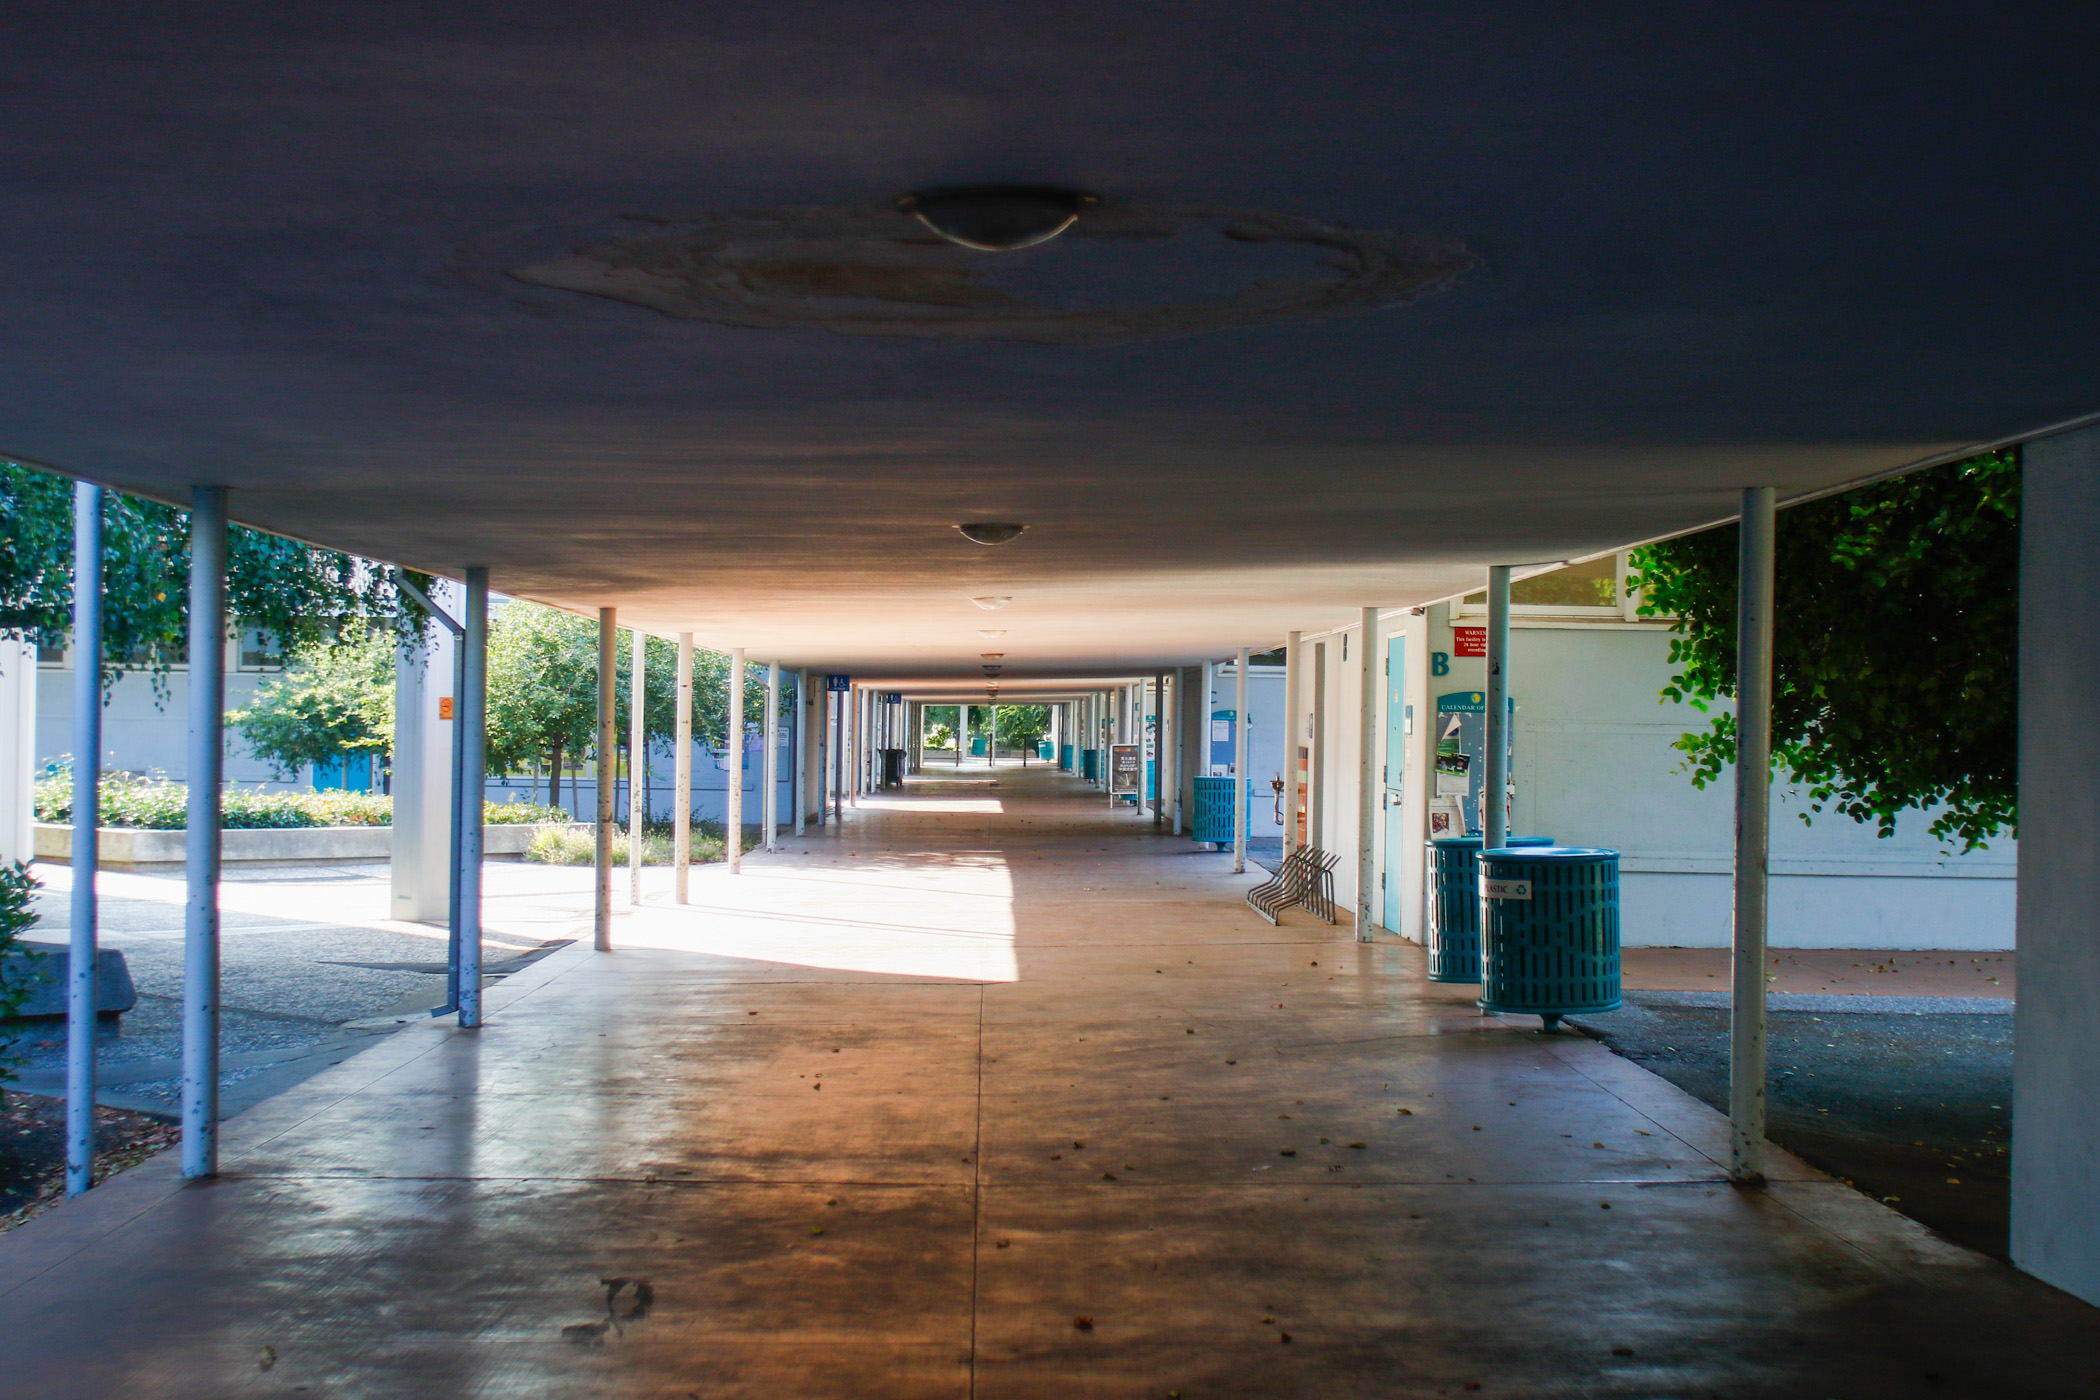 One of the many long hallways at Cubberley.